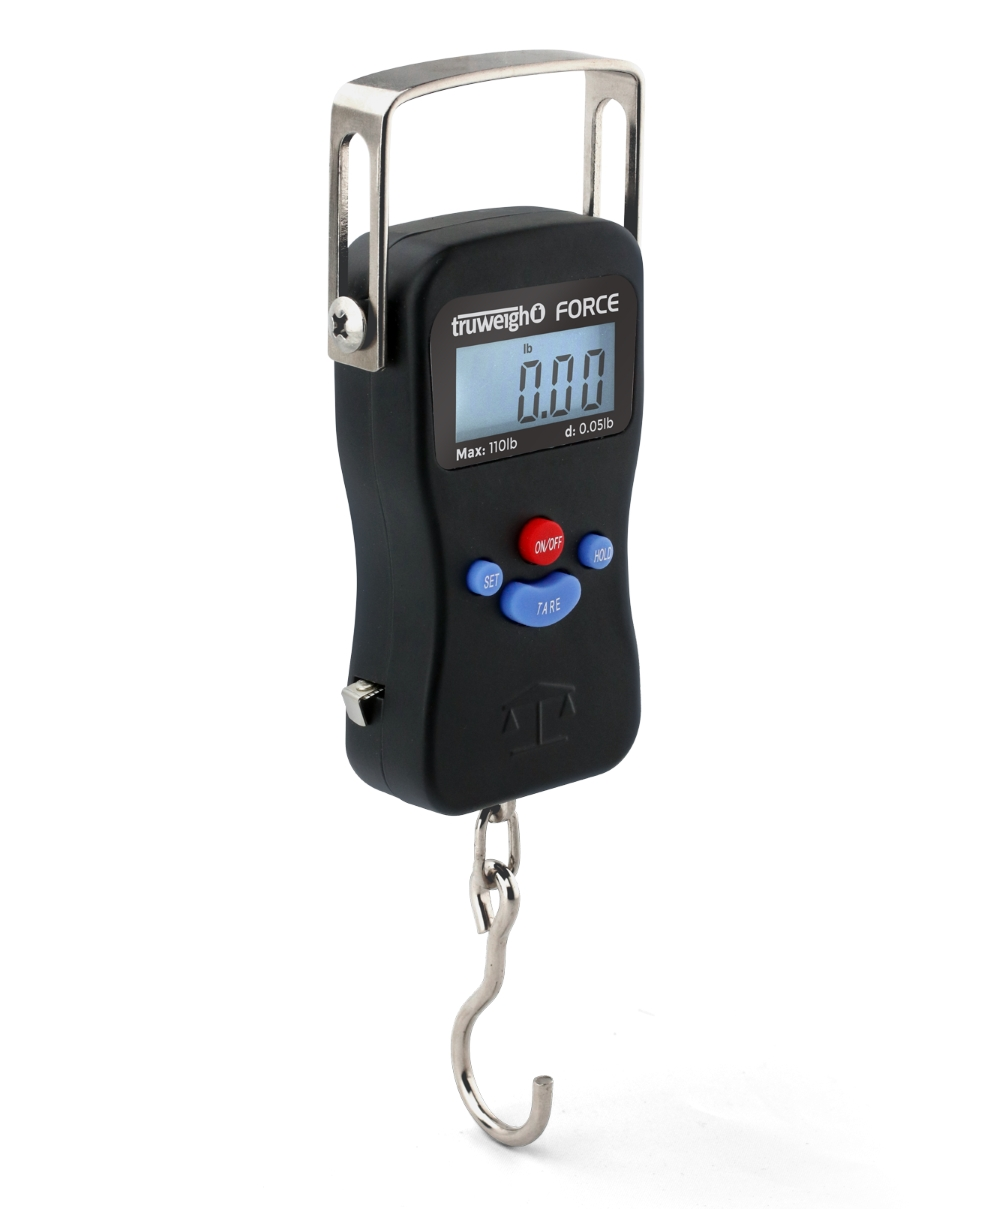 TruWeigh Force Digital Hanging Scale 110lb x 0.05 Pound Black